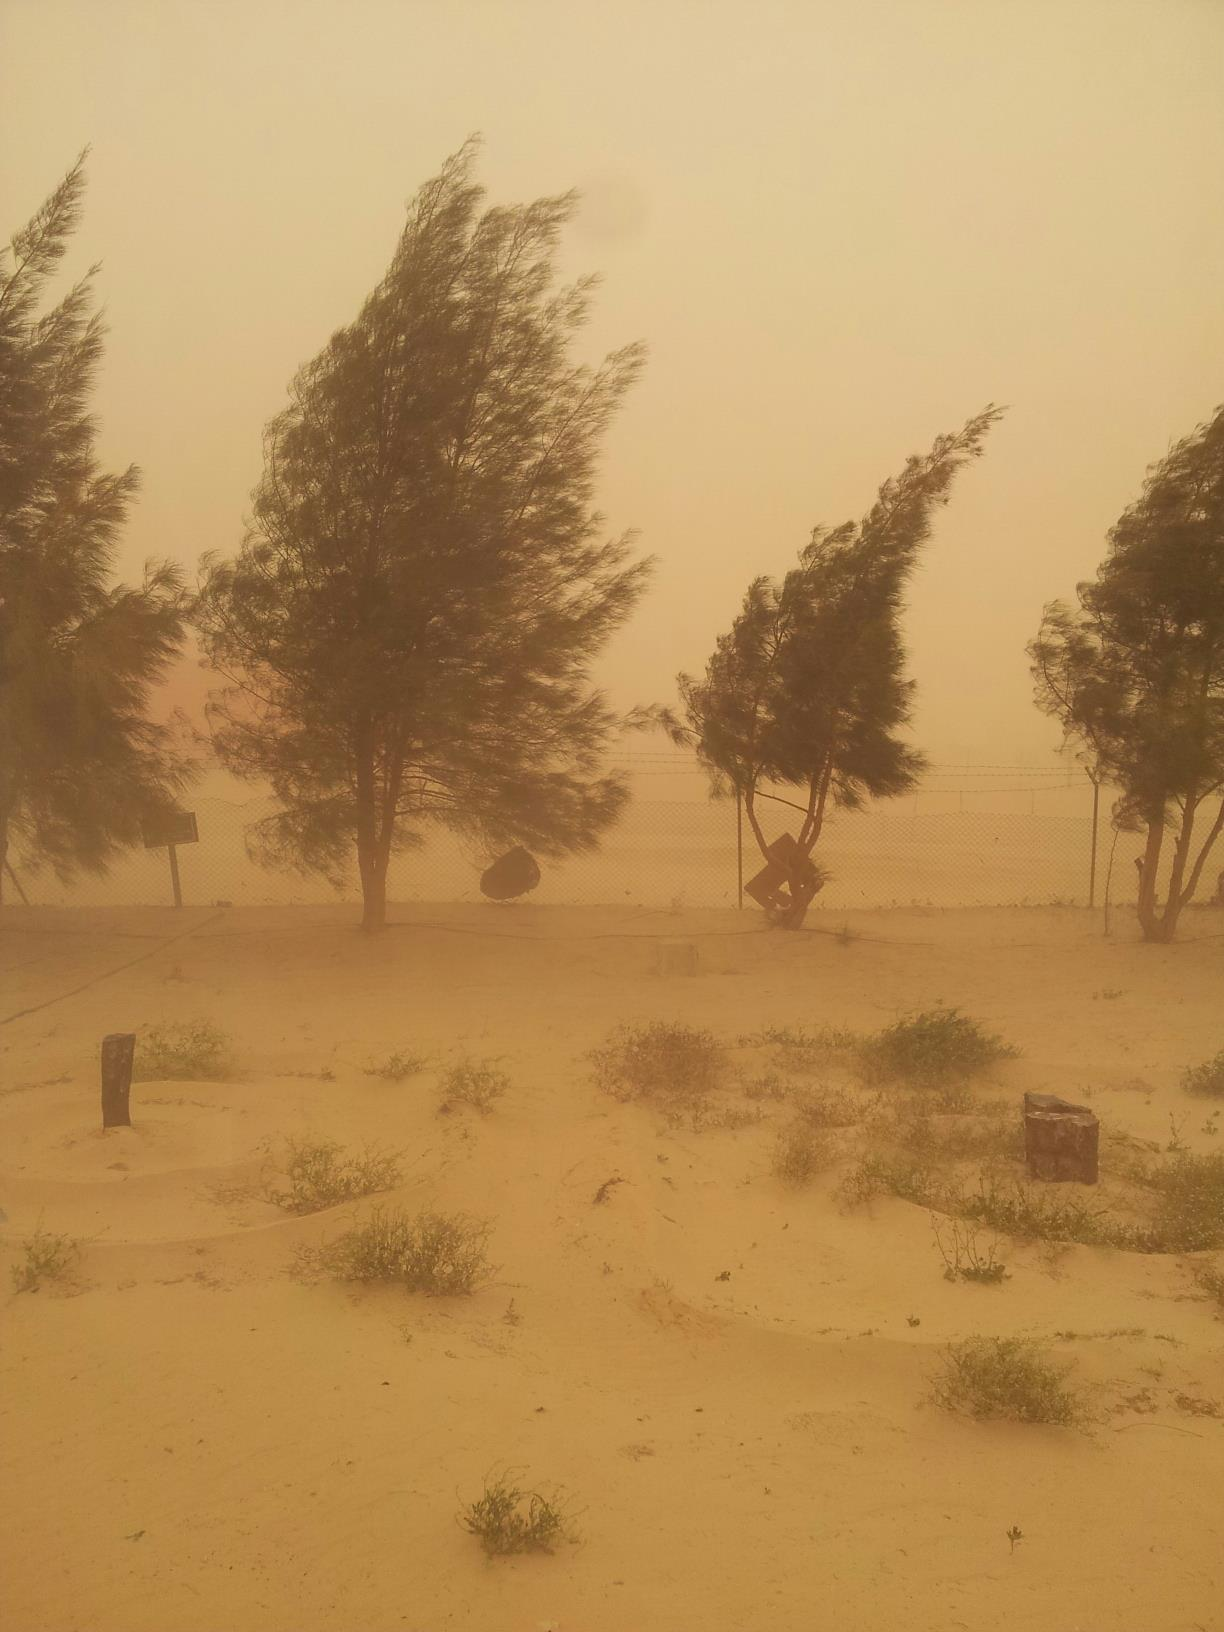 Sand Storm In Gialo